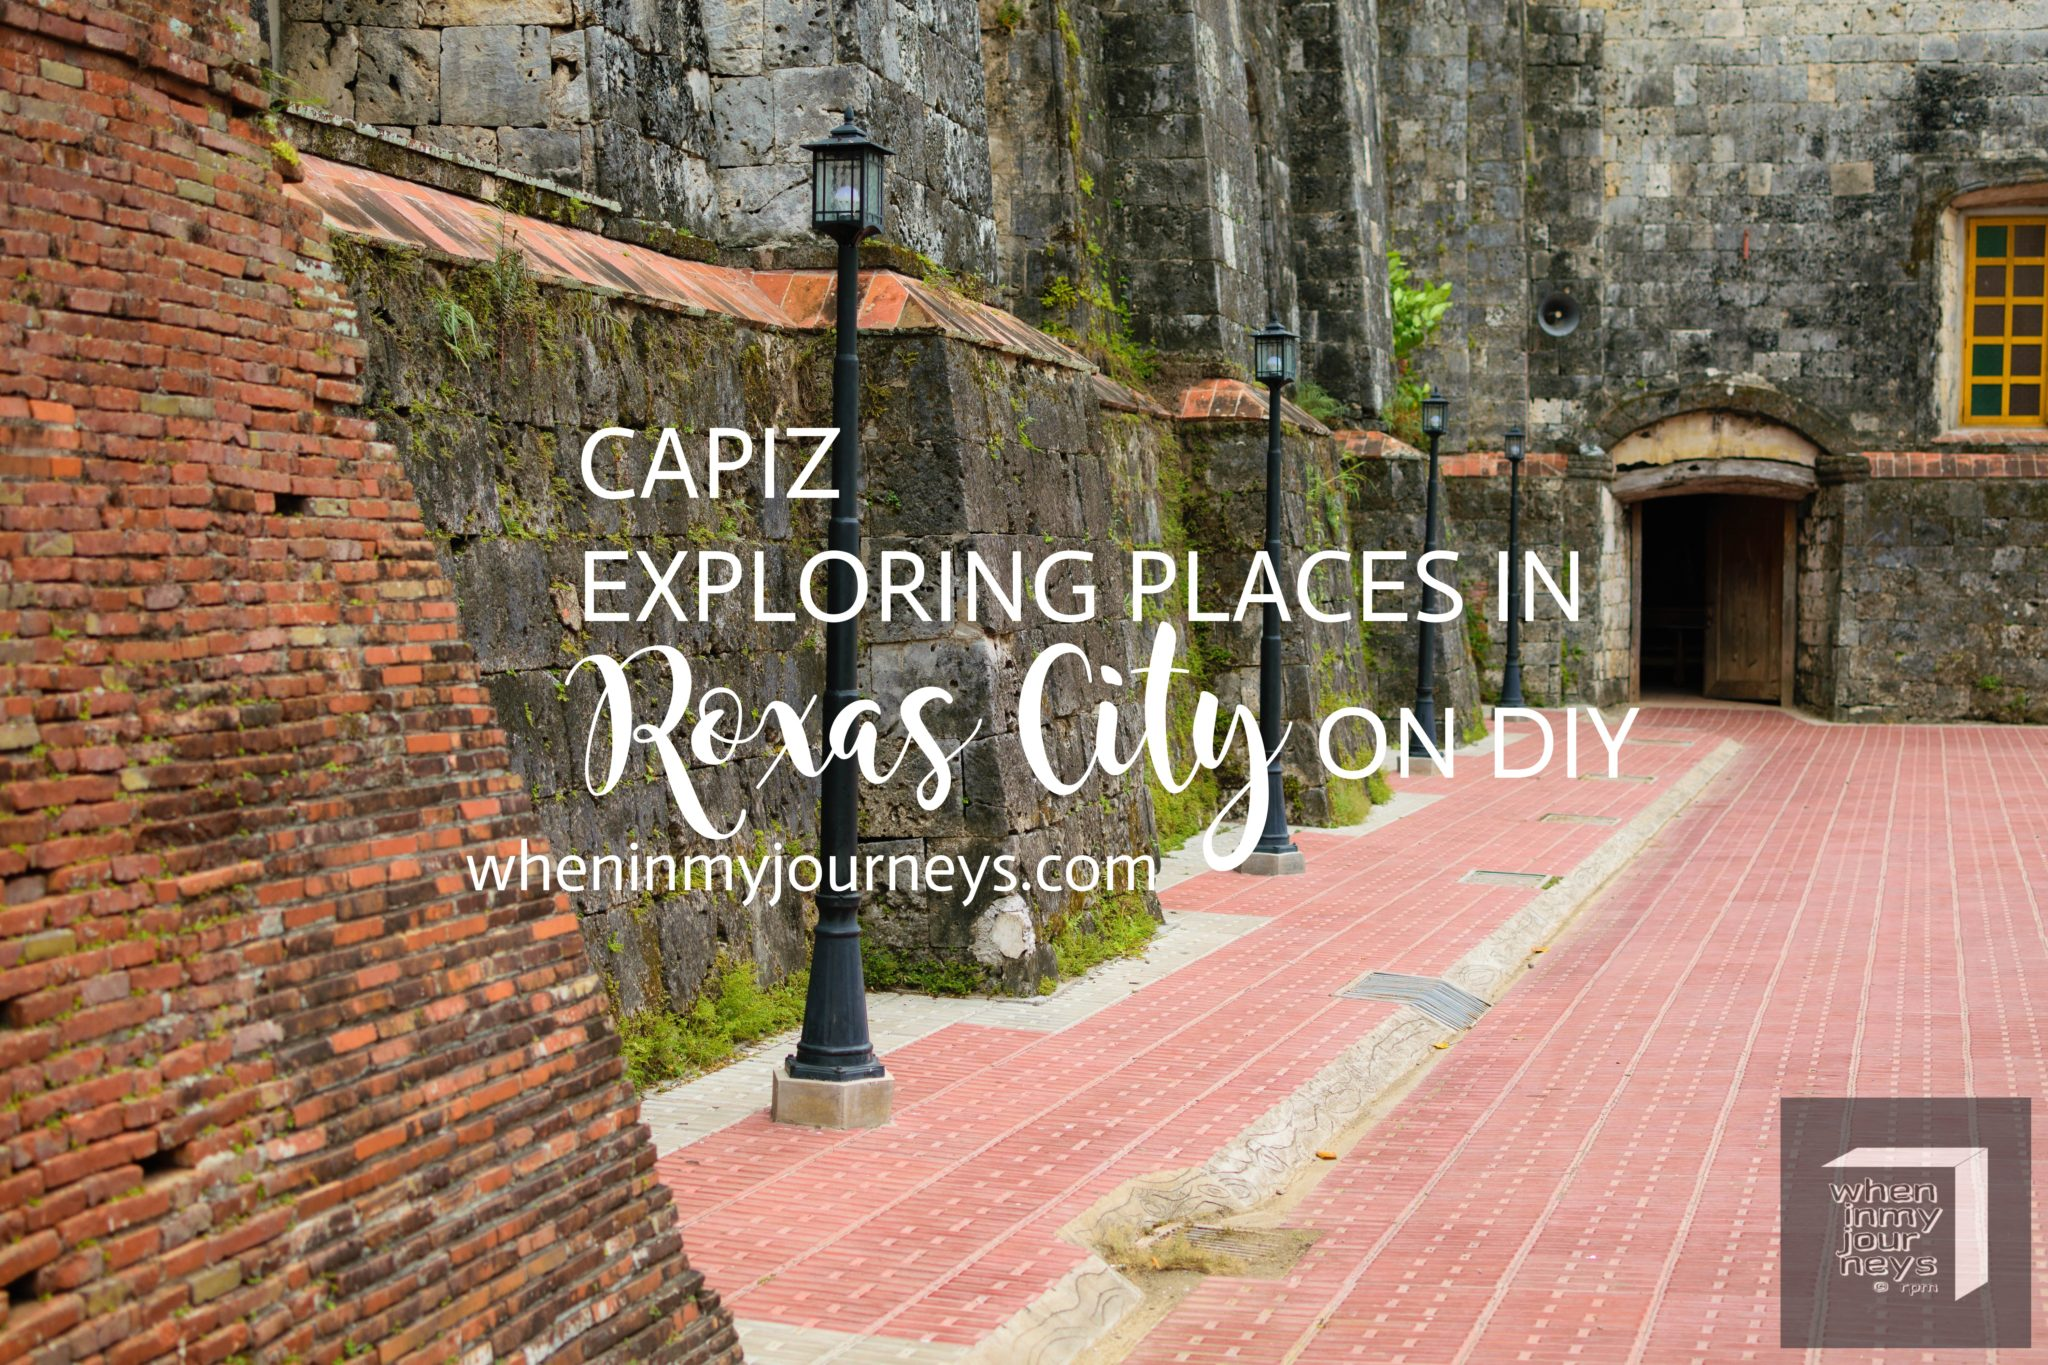 Capiz Exploring Places In Roxas City On Diy Travel Guide